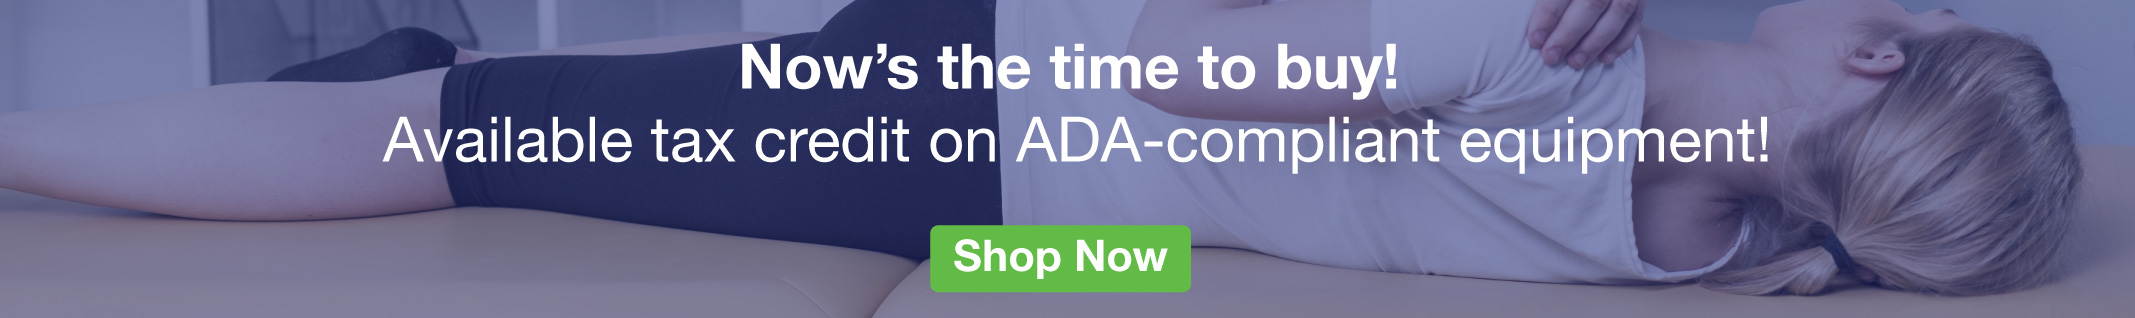 Full Page Ad – Now's the Time to Buy - Learn more about the ADA Tax Credit – Click to View Page